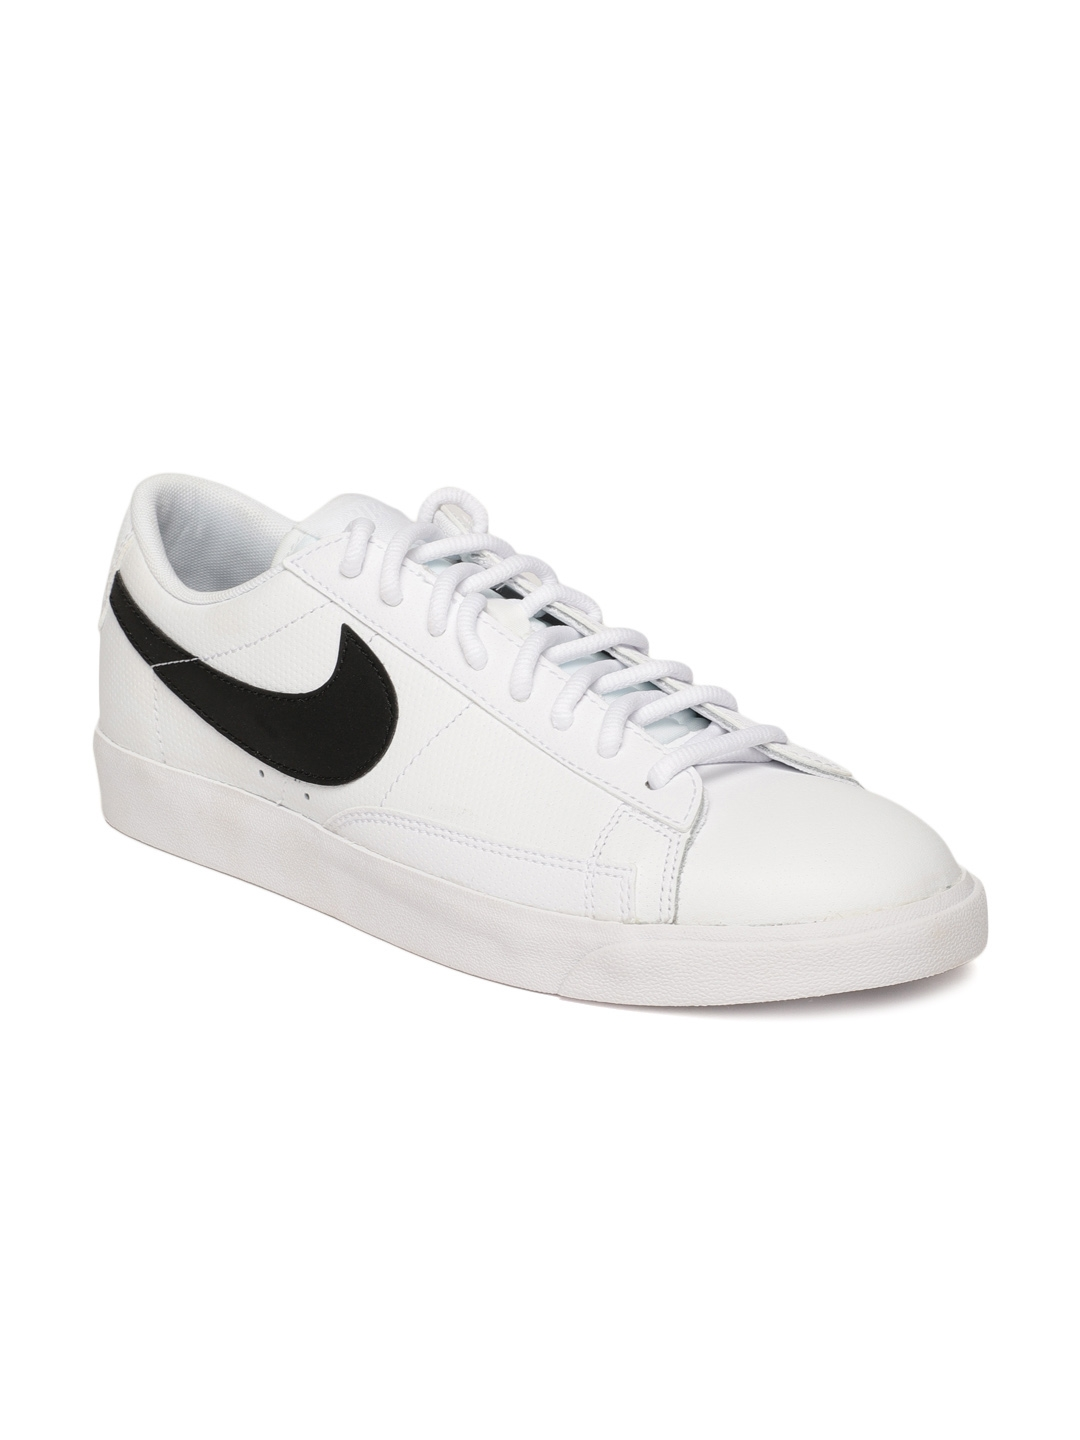 new arrival aba17 ca35d Nike Men White Blazer Low Leather Casual Shoes